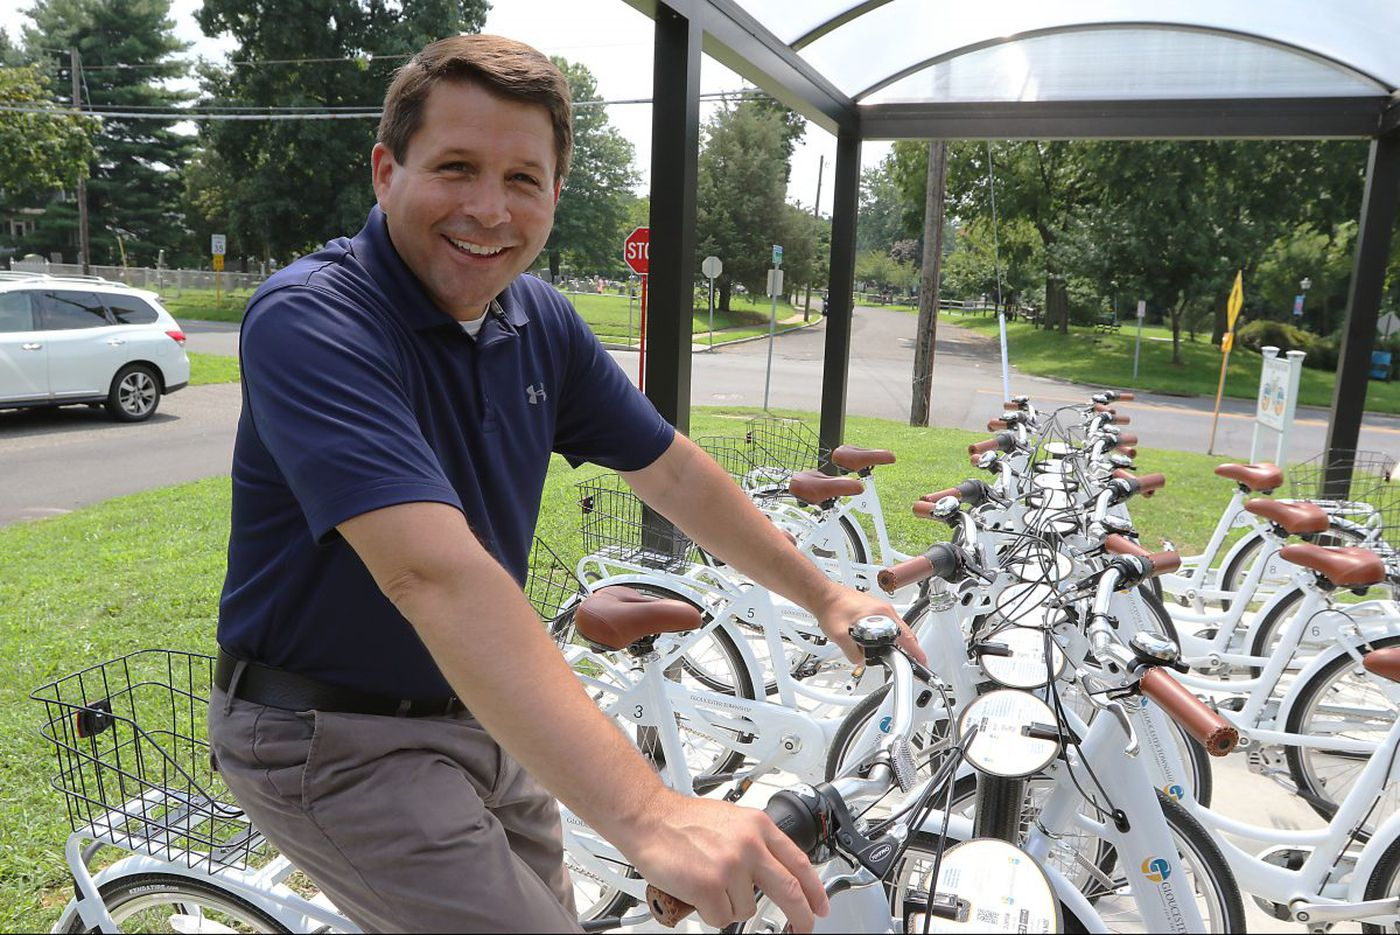 Get app, ride bike free in South Jersey's Gloucester Township